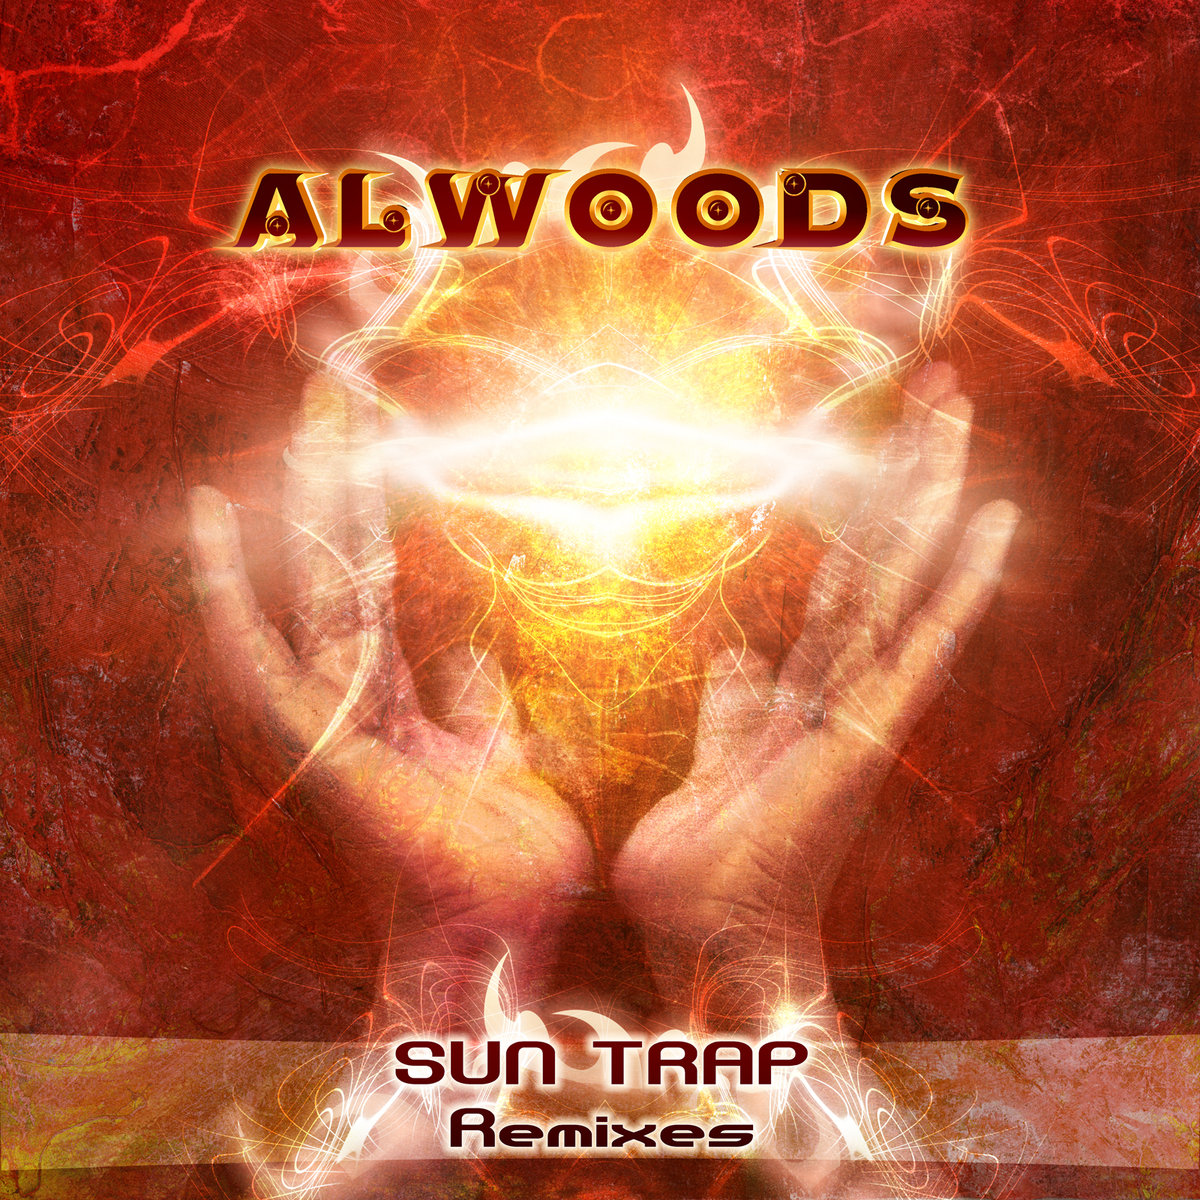 Alwoods - Sun Trap (Astralwoods 'Buddha Spirit' Remix) @ 'Sun Trap remixes' album (electronic, alwoods download)